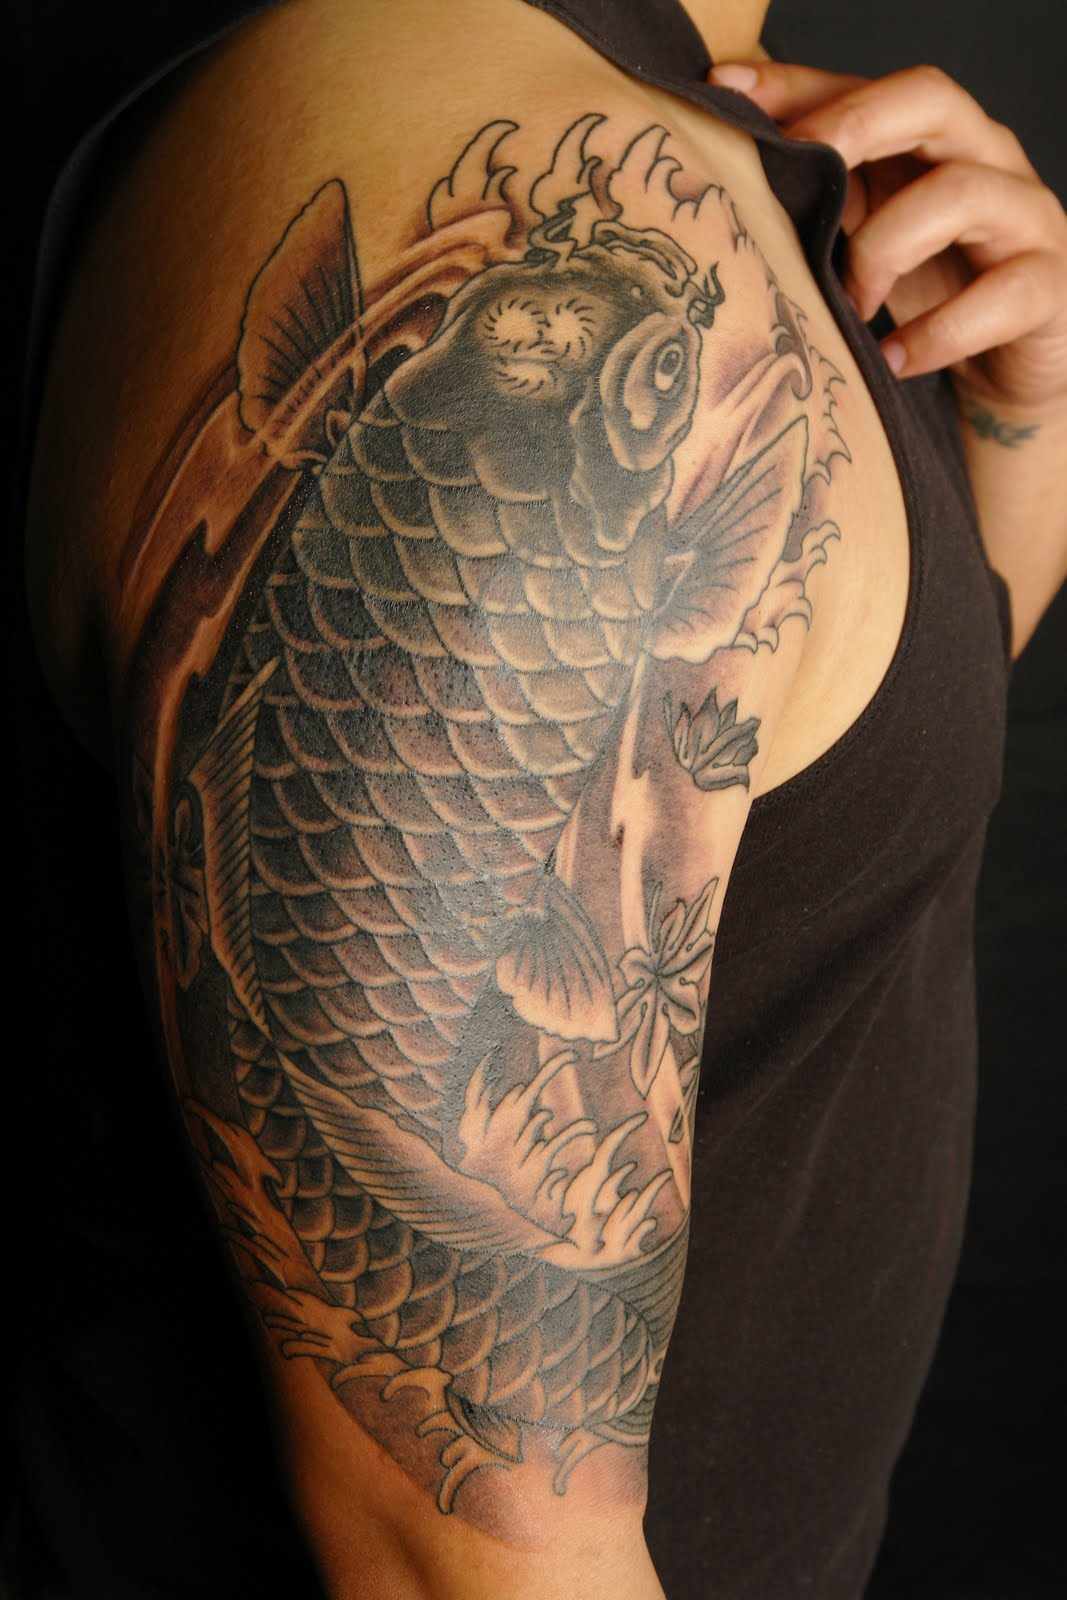 shane tattoos black and grey koi cover up. Black Bedroom Furniture Sets. Home Design Ideas